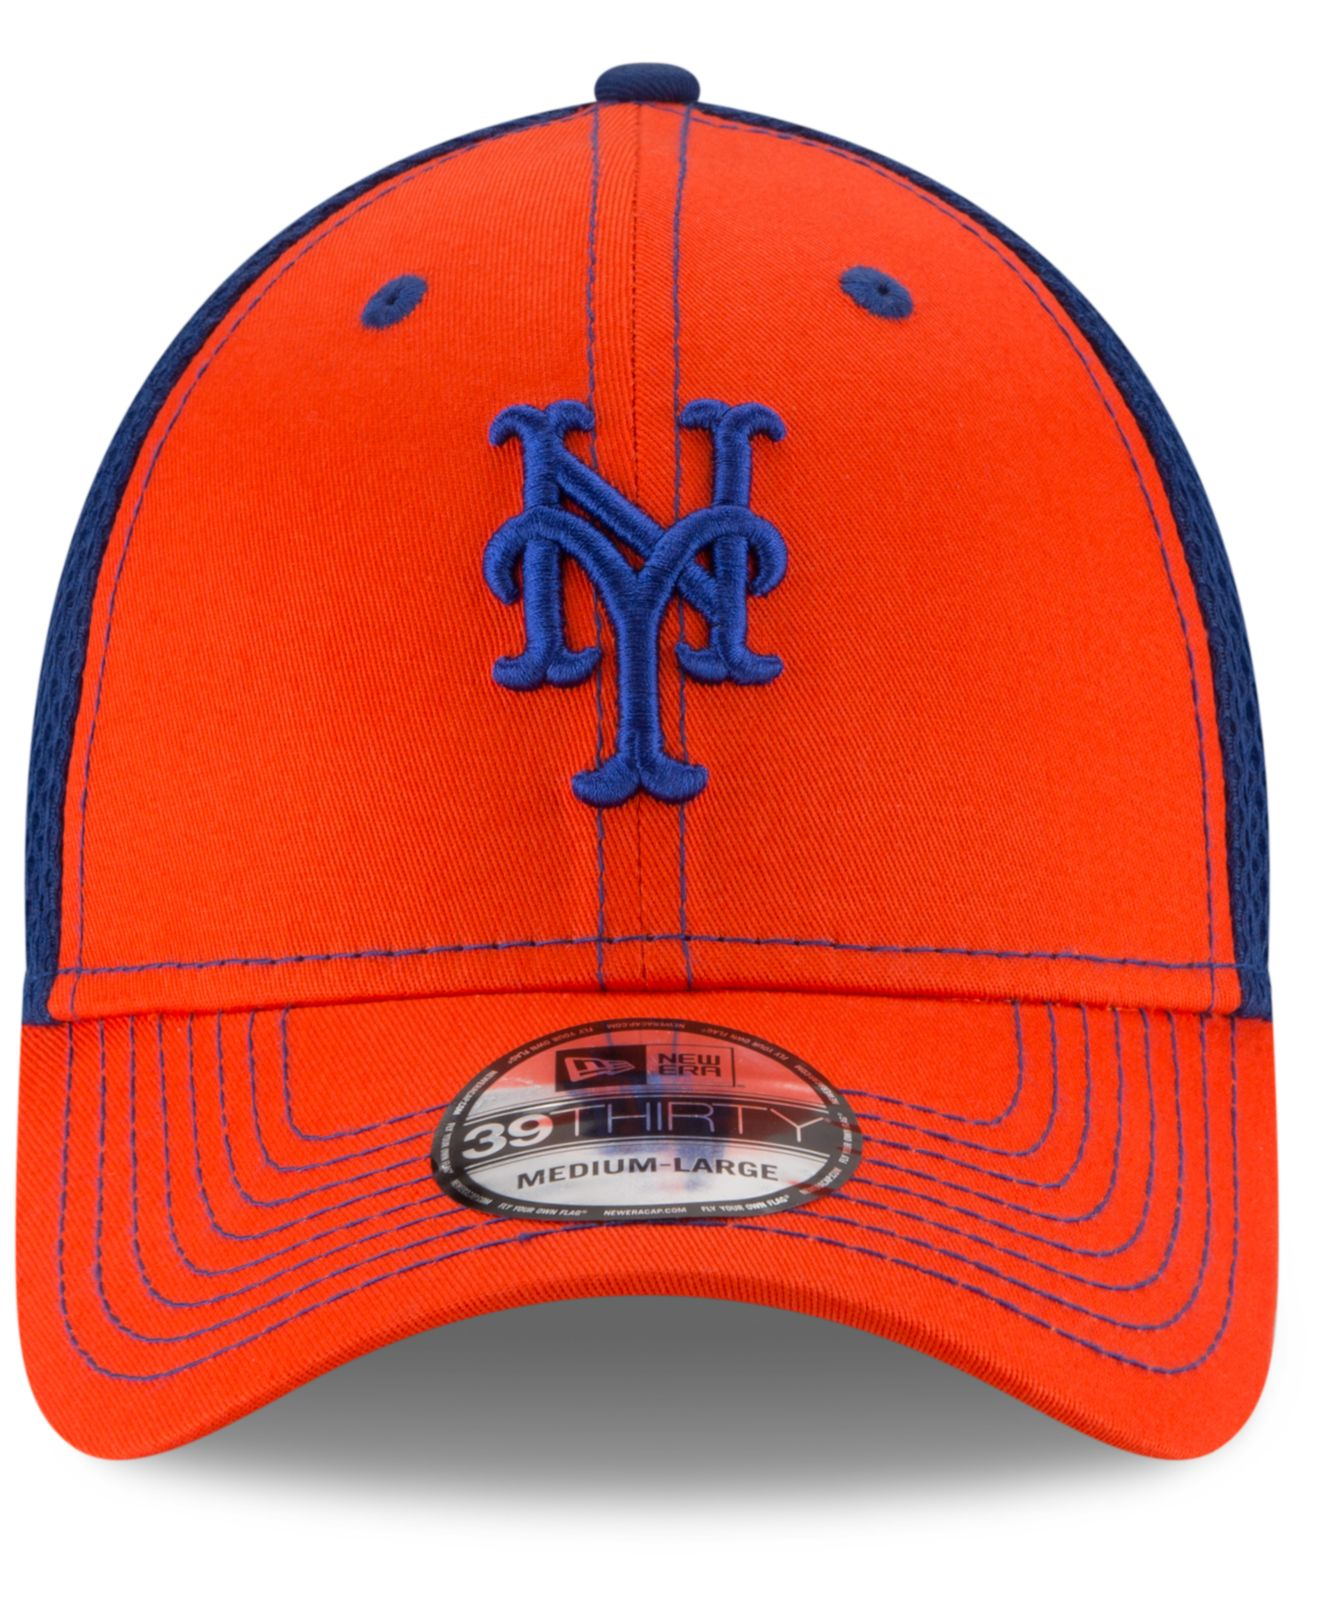 low priced 23ad0 e15fa Lyst - KTZ New York Mets Team Front Neo 39thirty Cap in Blue for Men